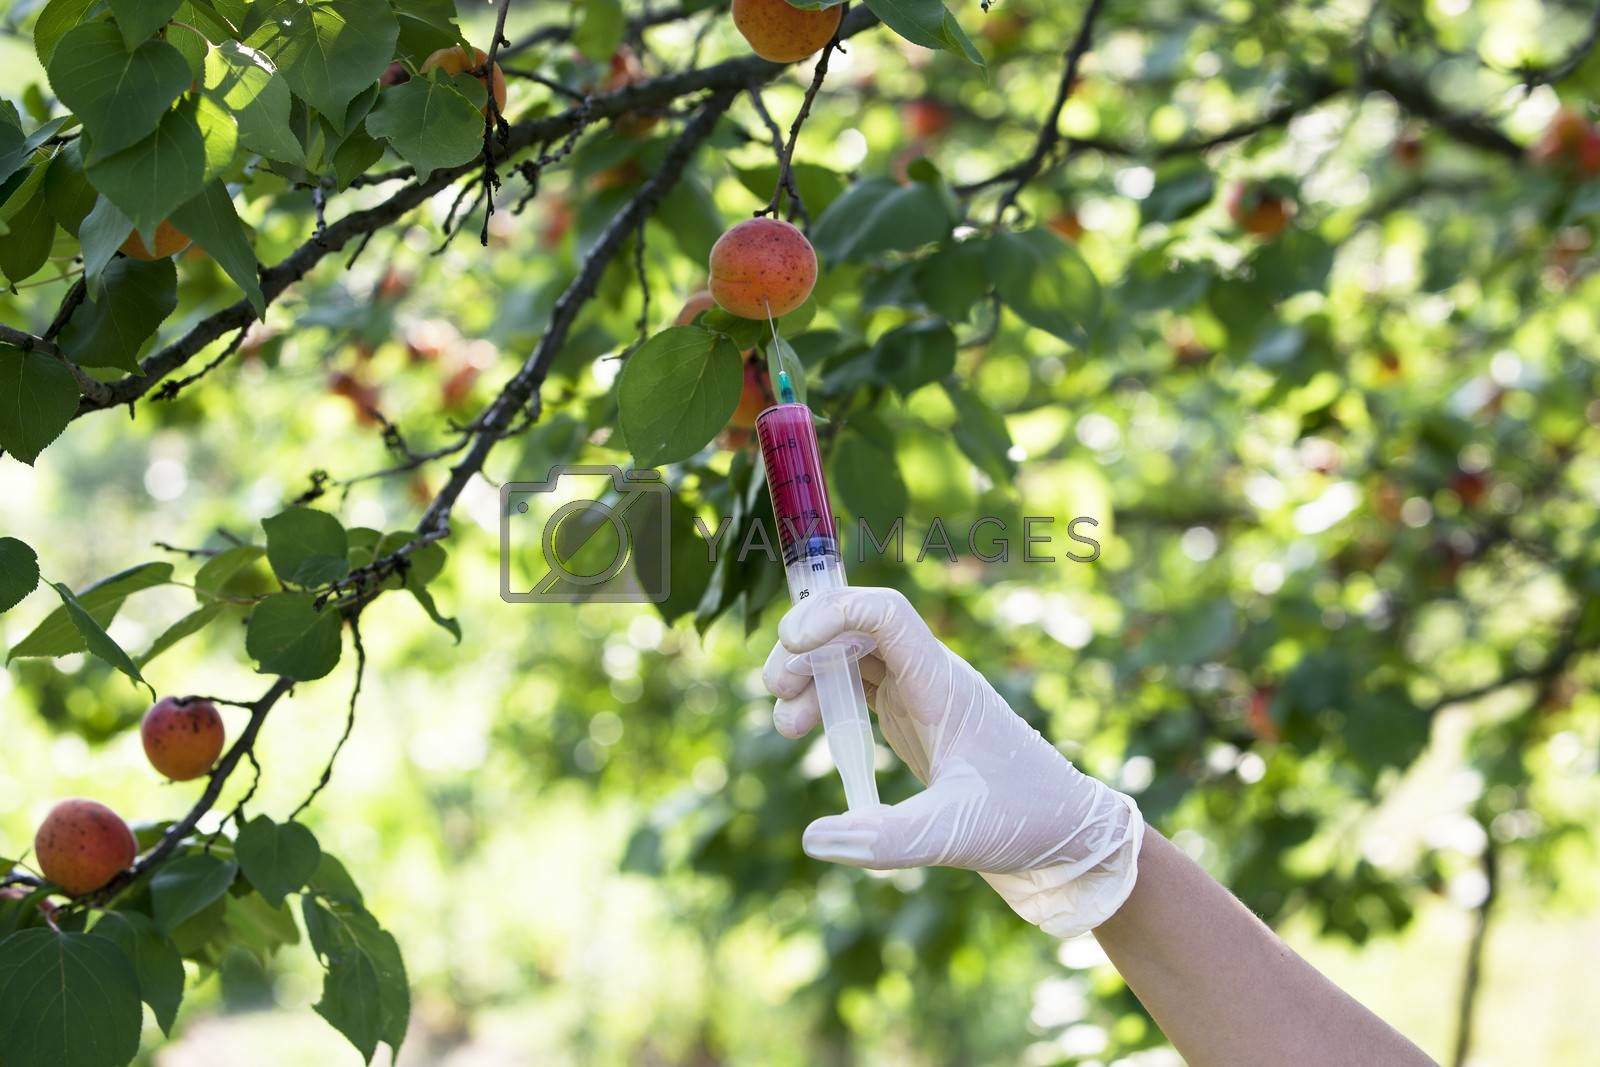 Pesticide injected in a fruit